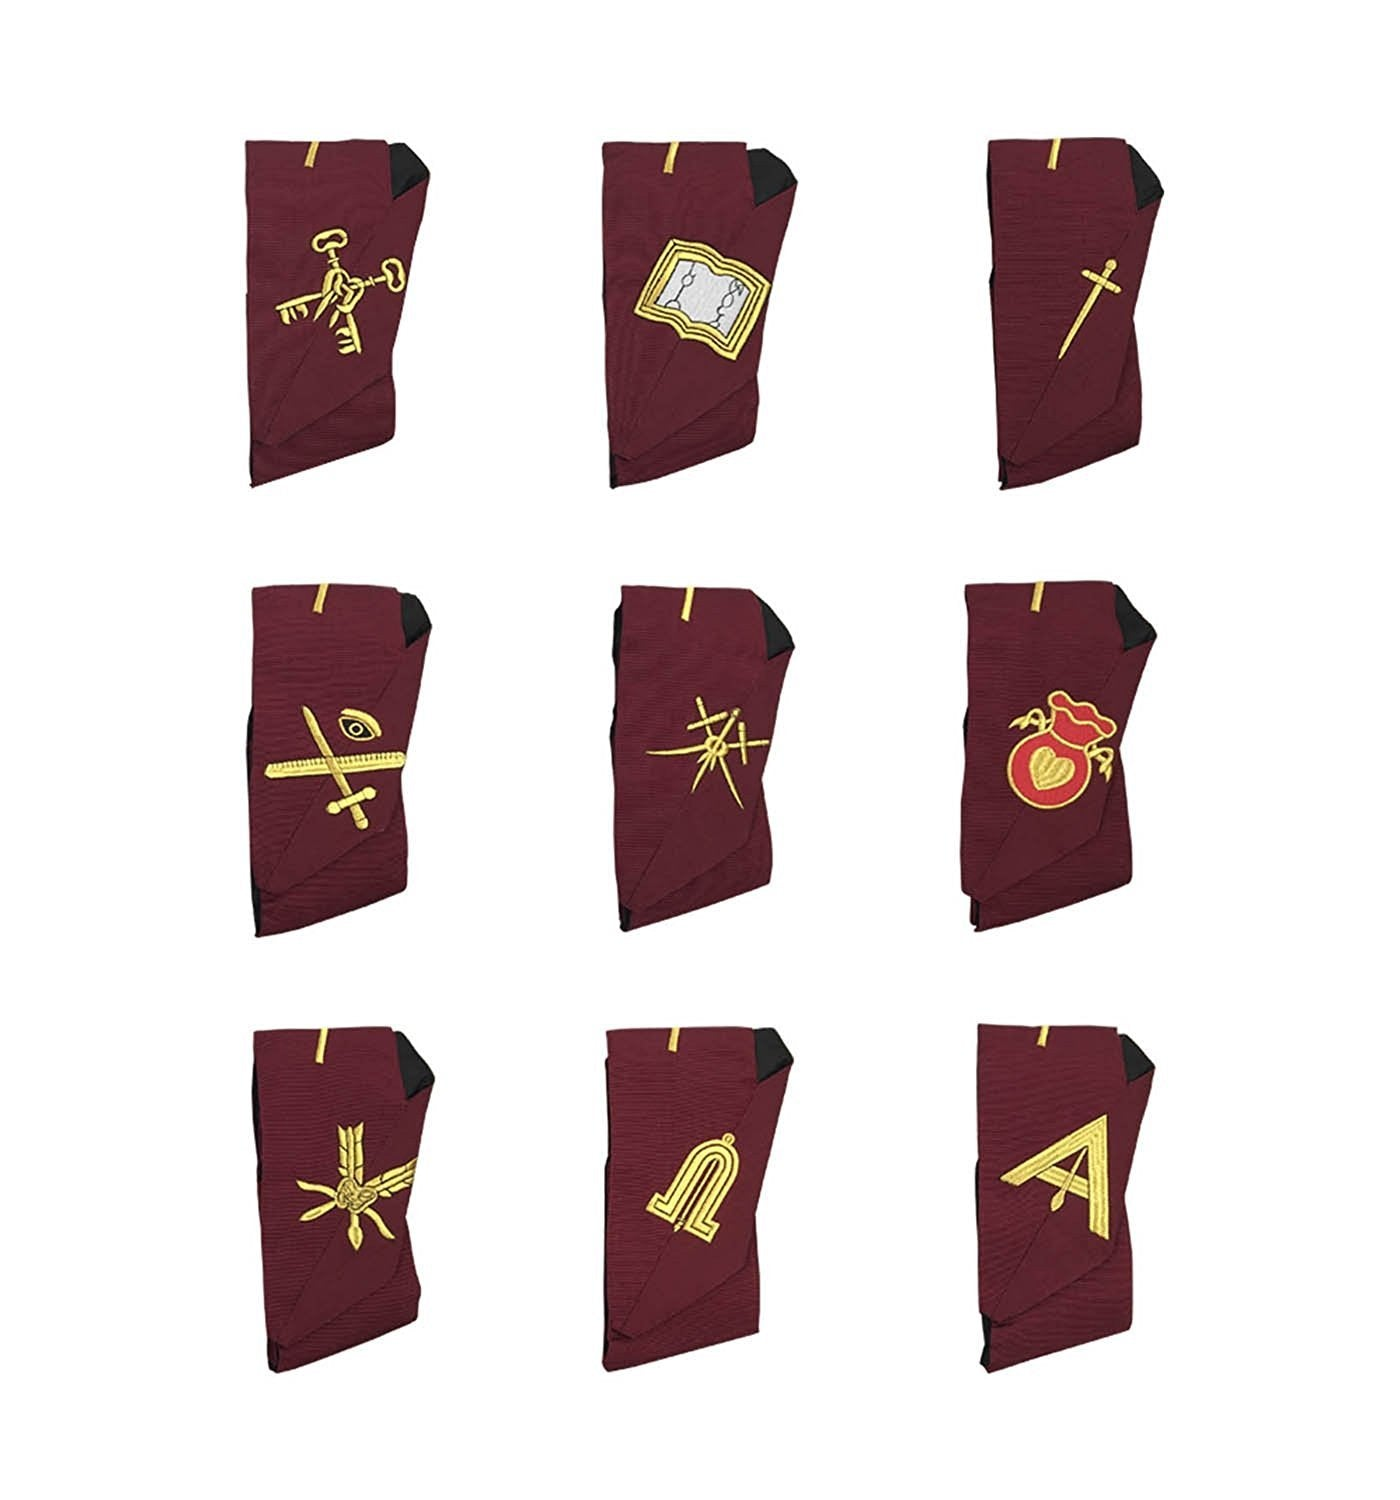 Masonic Blue Lodge 14th Degree Collars- Set of 9 collars Machine Embroidered - Bricks Masons